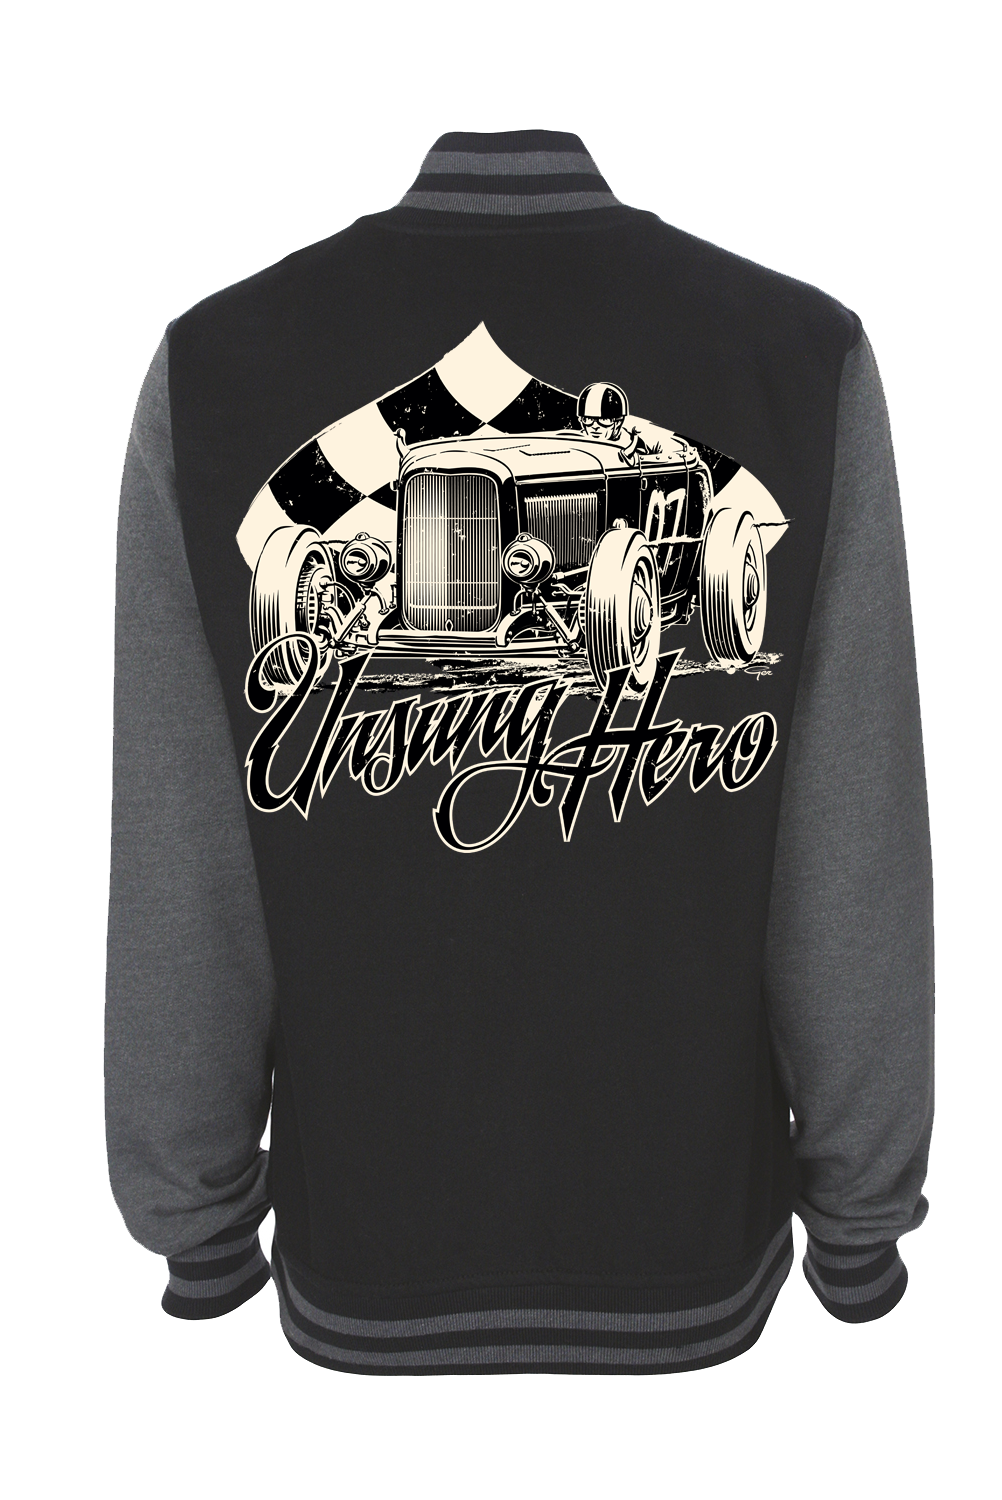 "UNSUNG HERO ""Roadster race"" VARSITY JACKET UNISEX by Ger ""Dutch Courage"" Peters artwork"